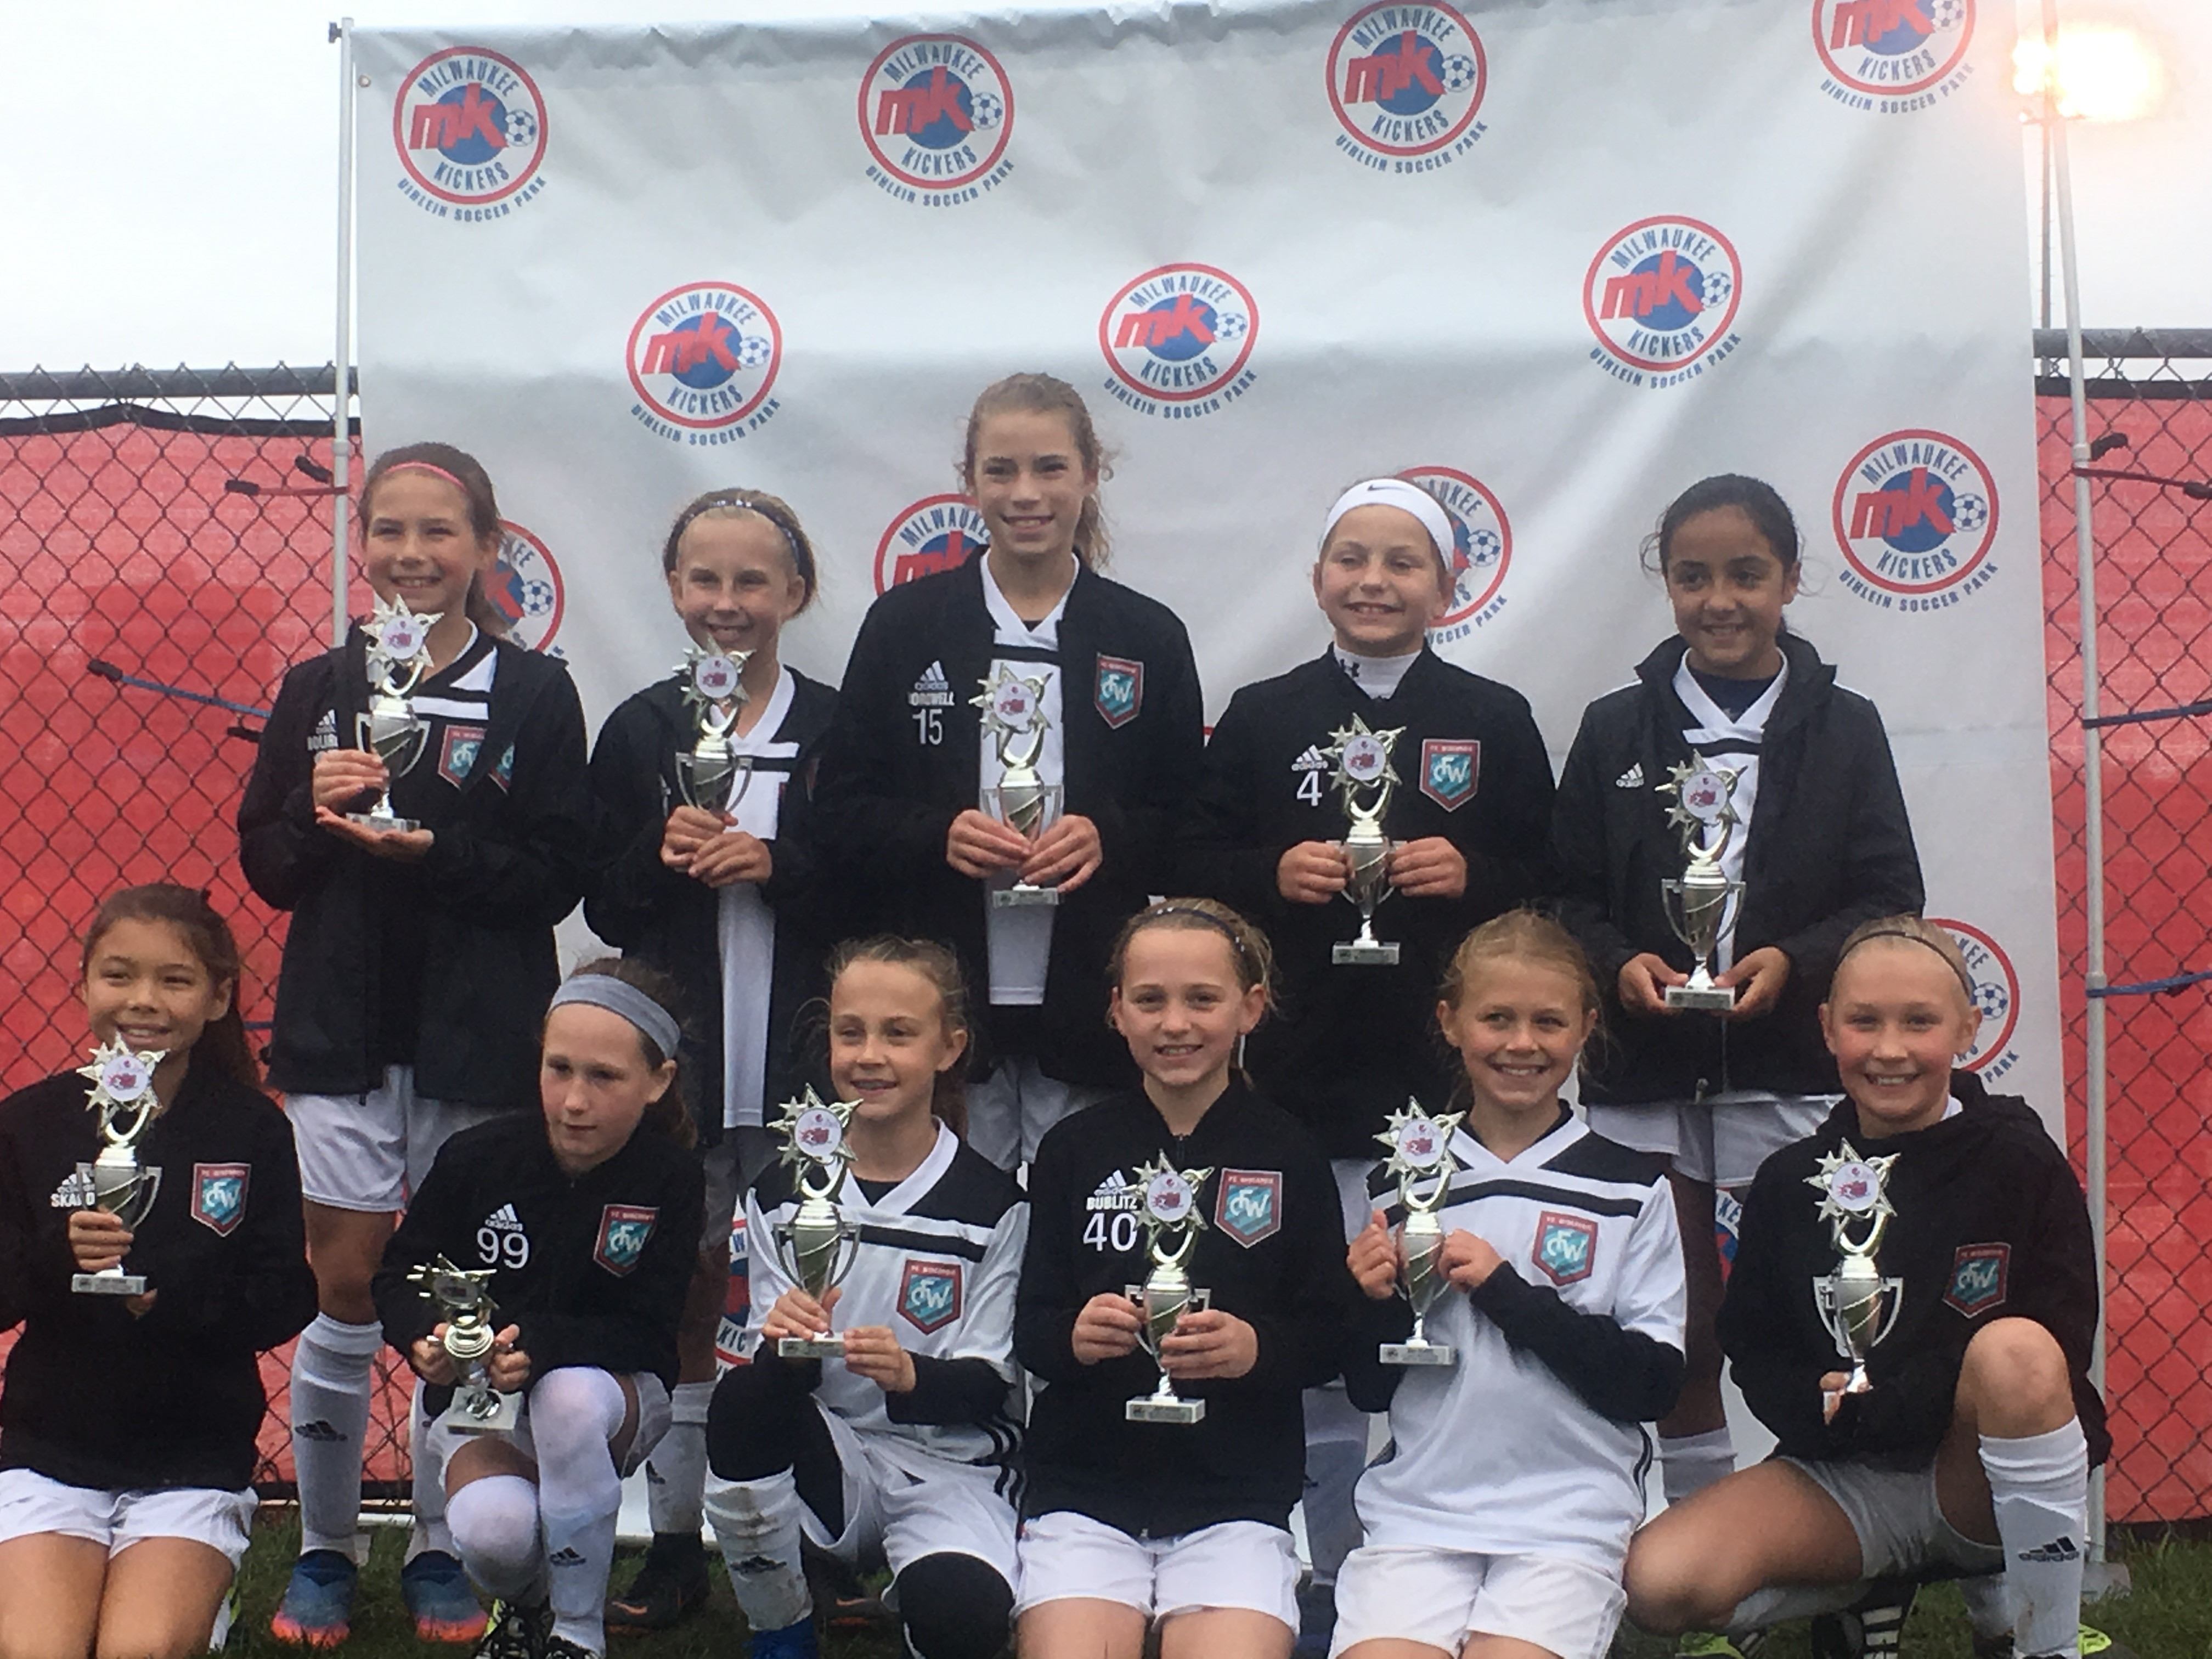 U11 and U12 Teams Shine in Tournament Play